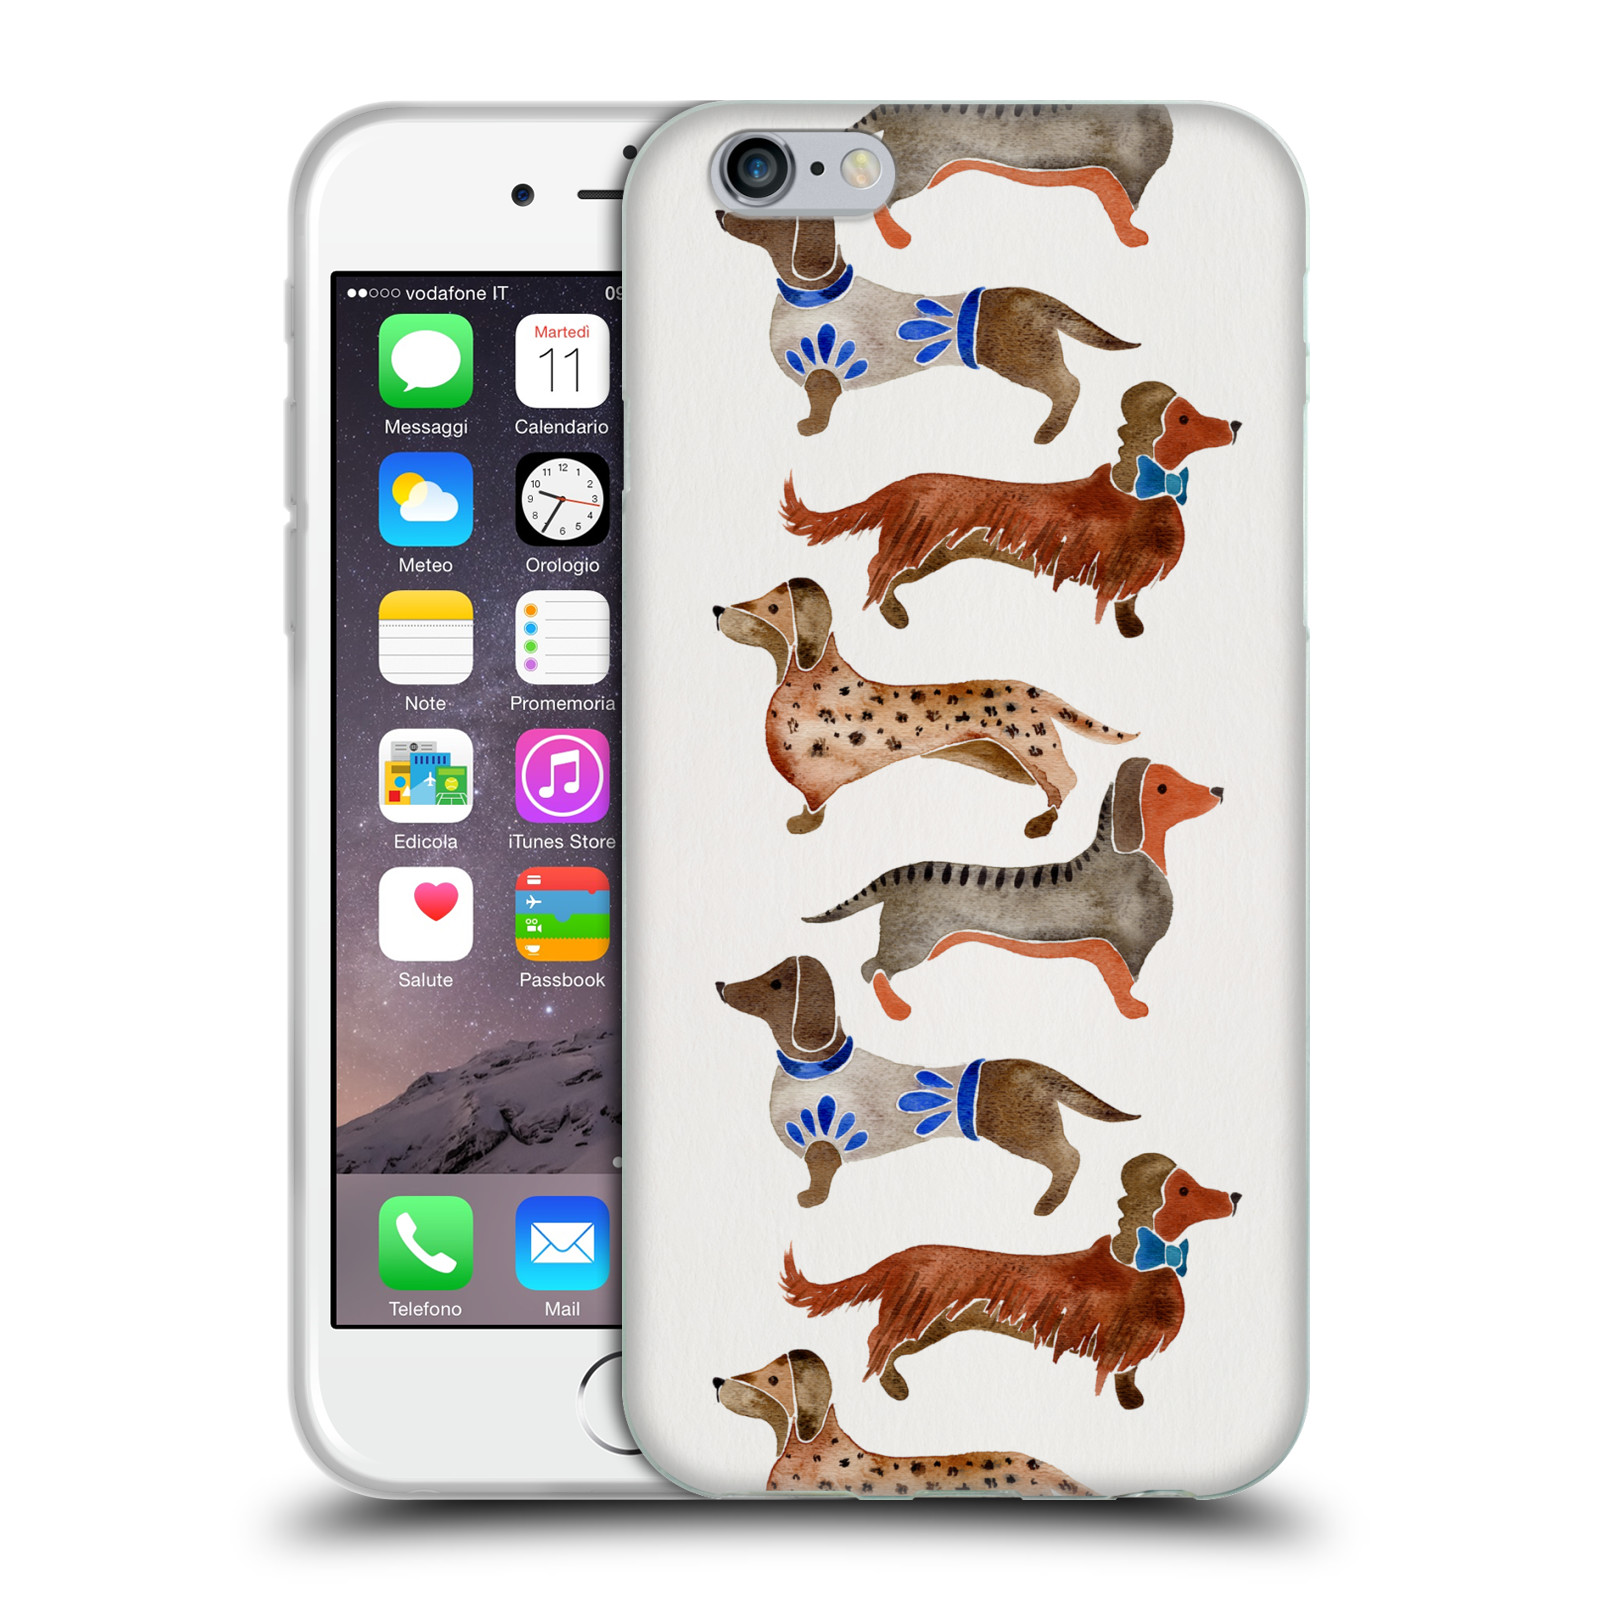 Squishy Gel Iphone Case : OFFICIAL CAT COQUILLETTE ANIMALS SOFT GEL CASE FOR APPLE iPHONE PHONES eBay